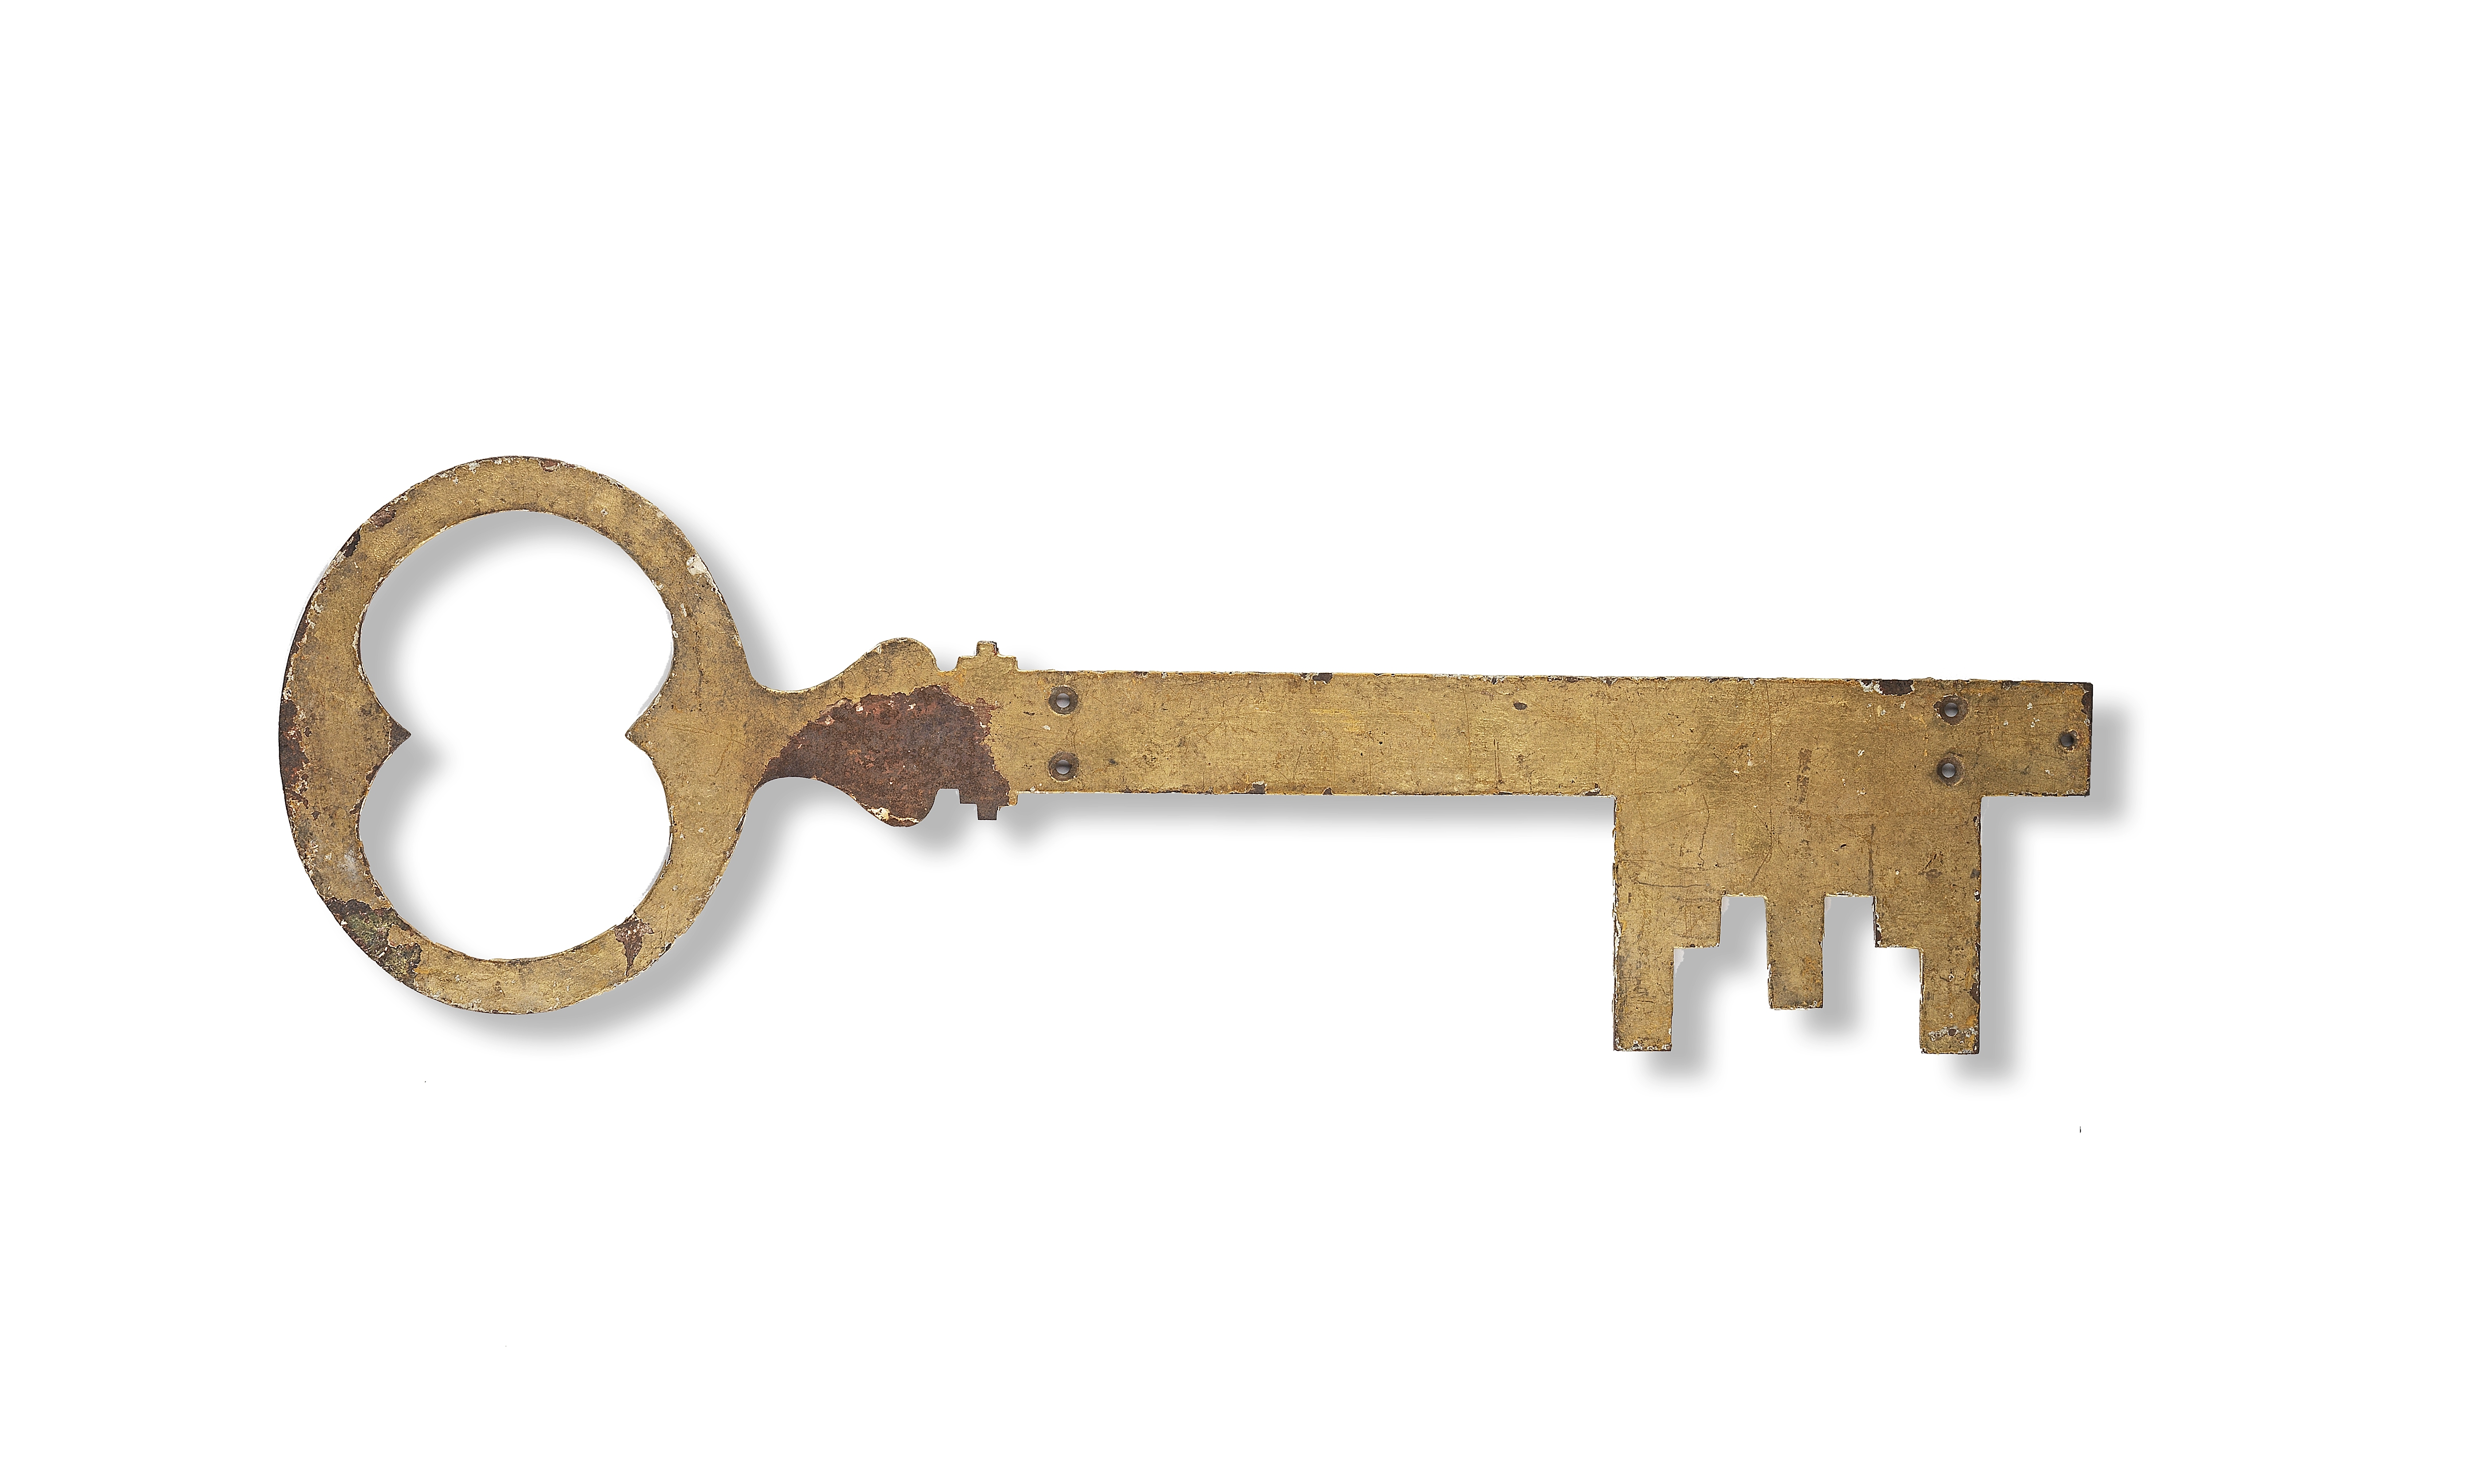 Lot 221 - A wrought iron trade sign, in the form of a key